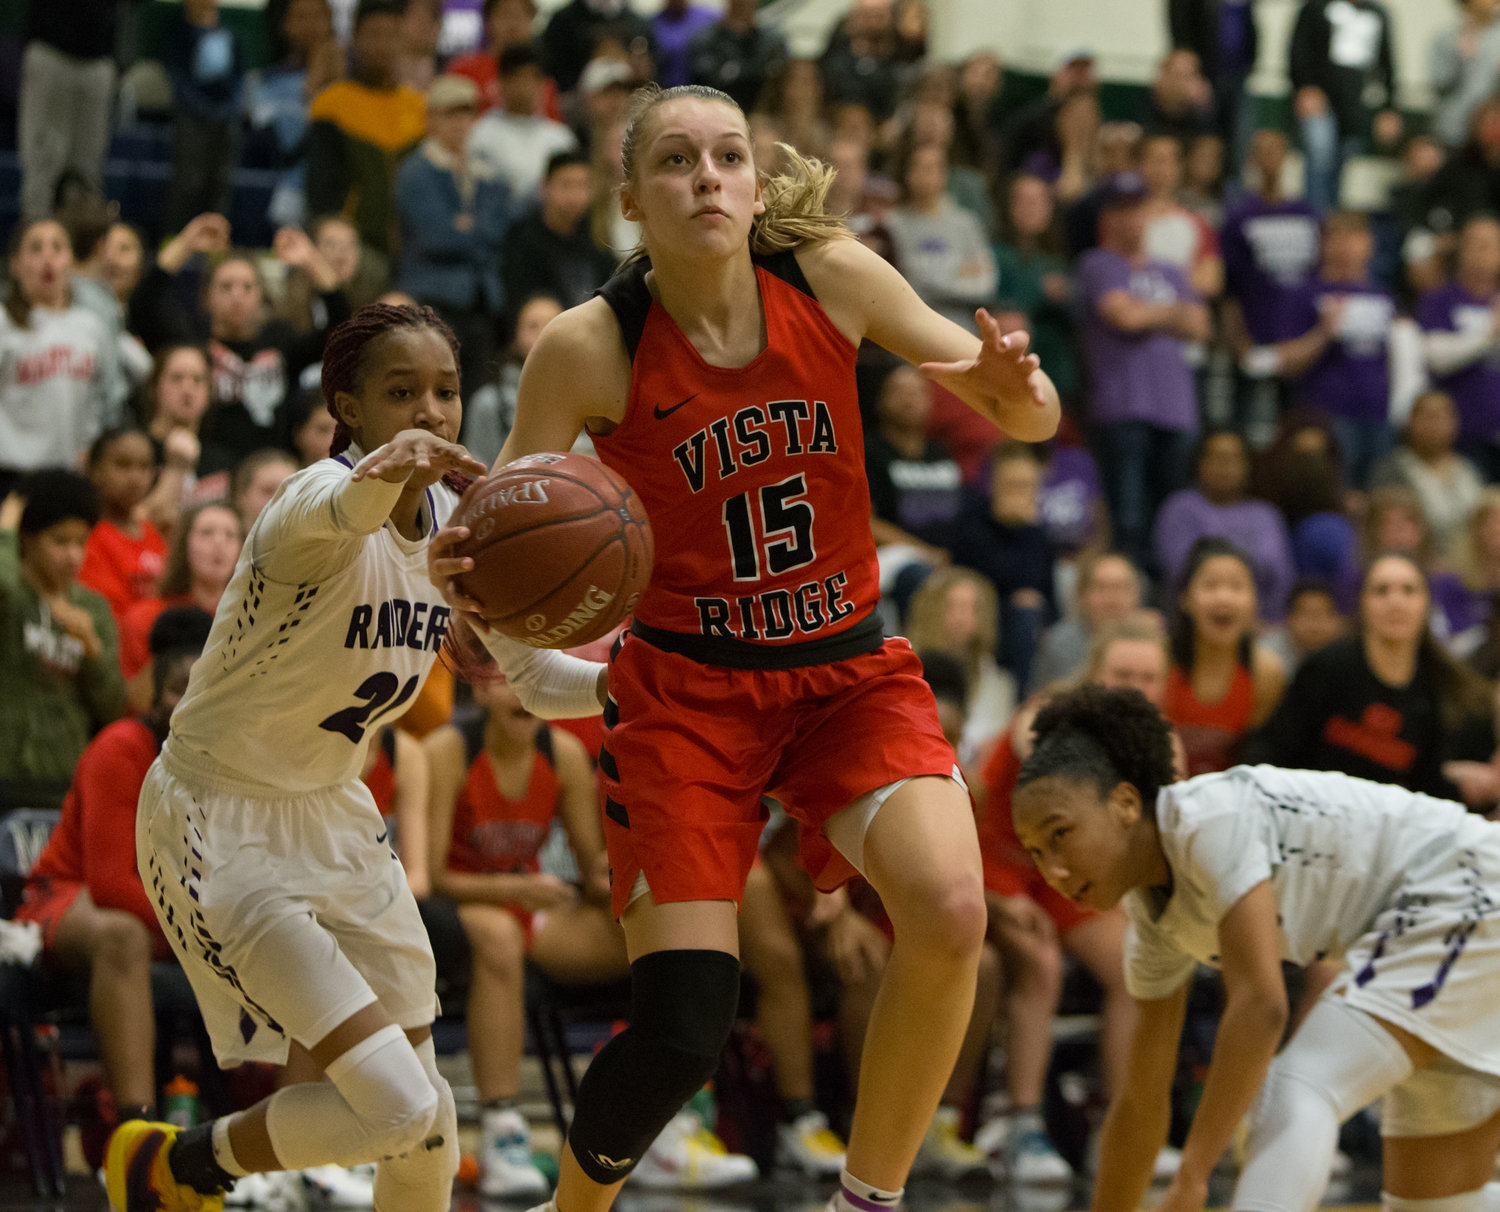 Vista Ridge Rangers sophomore guard Aj Marotte (15) moves the ball during a regional quarterfinal playoff girls basketball game between Vista Ridge and Cedar Ridge on Tuesday, Feb. 19, 2019 in Austin, Texas.